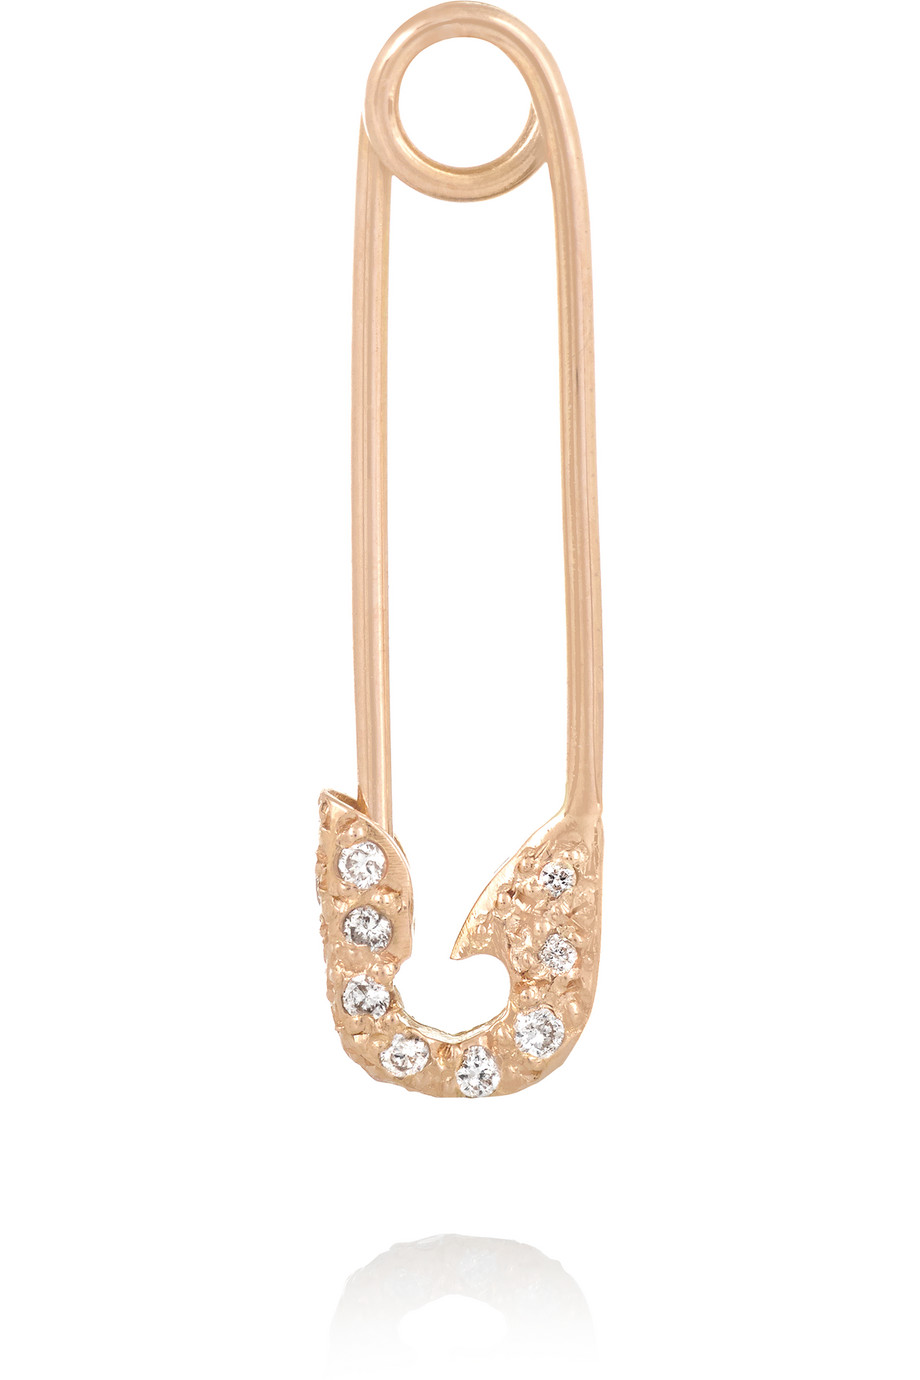 Ileana Makri Safety Pin 18-Karat Rose Gold Diamond Earring, Women's